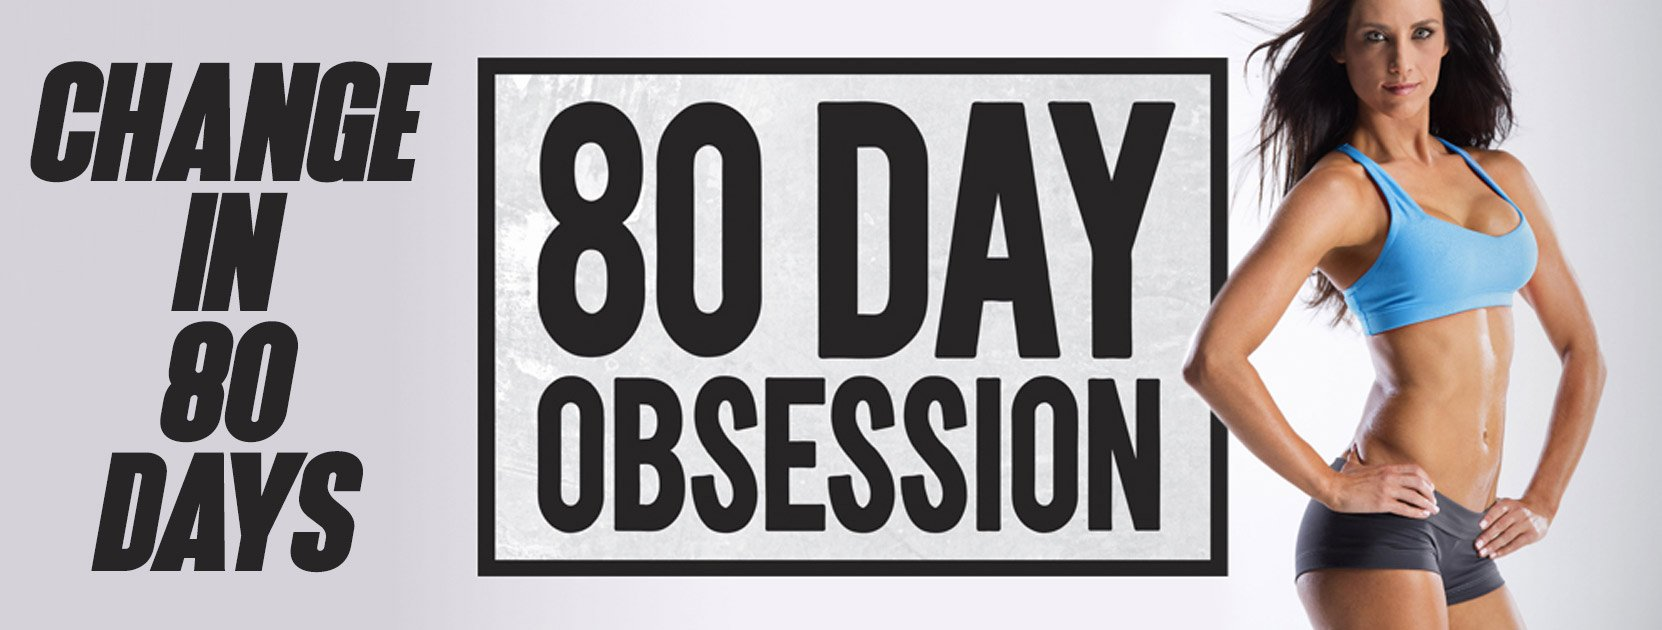 80 Day Obsession Workout